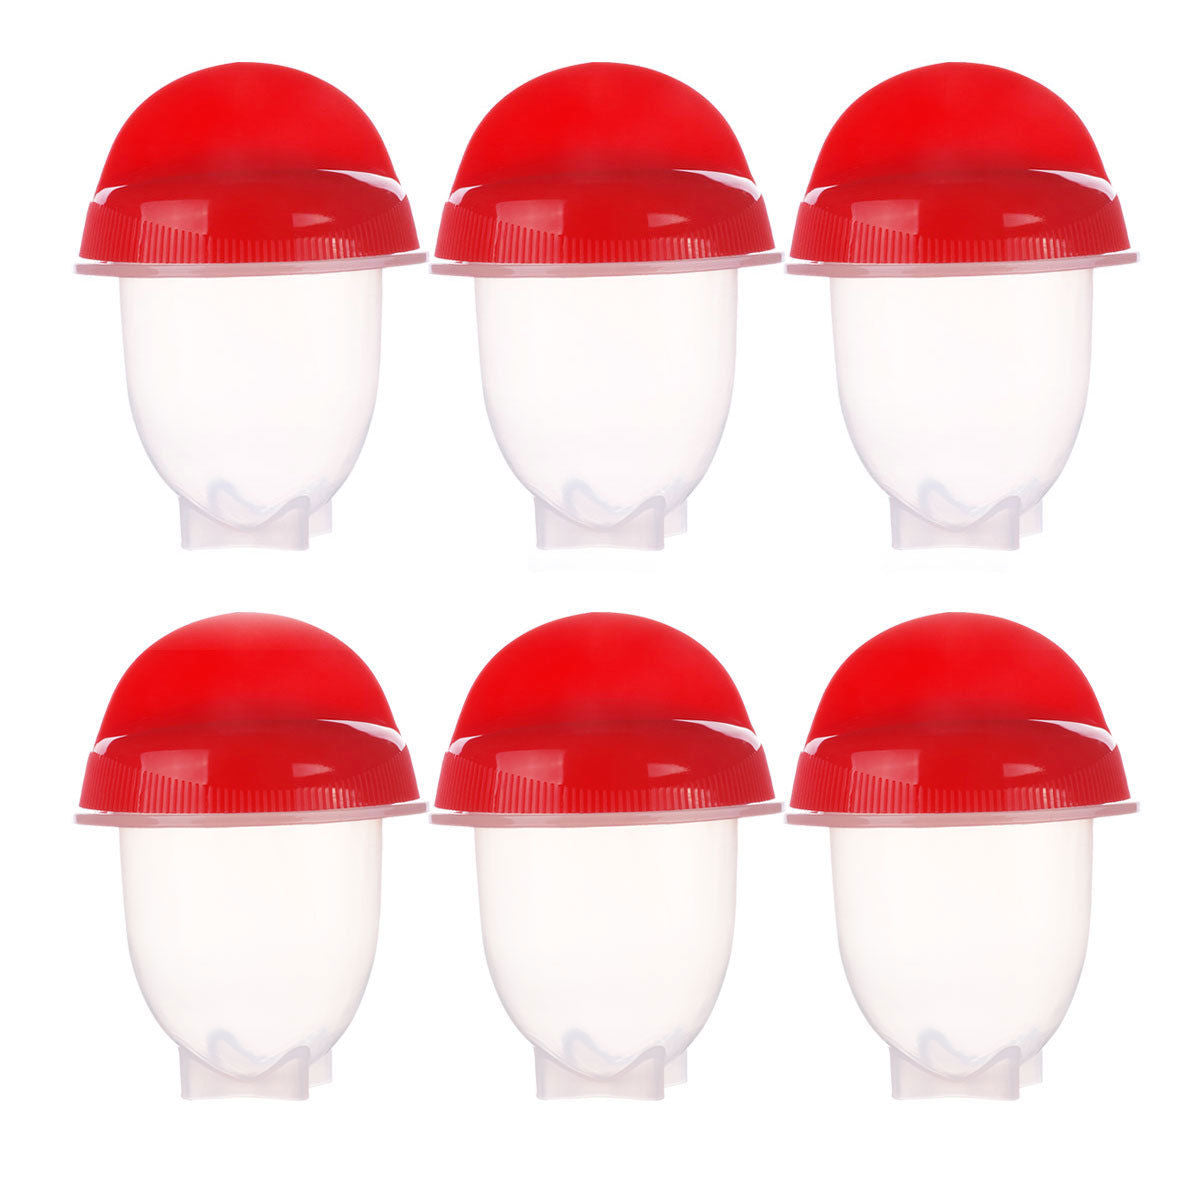 6PCS Egg Cooker